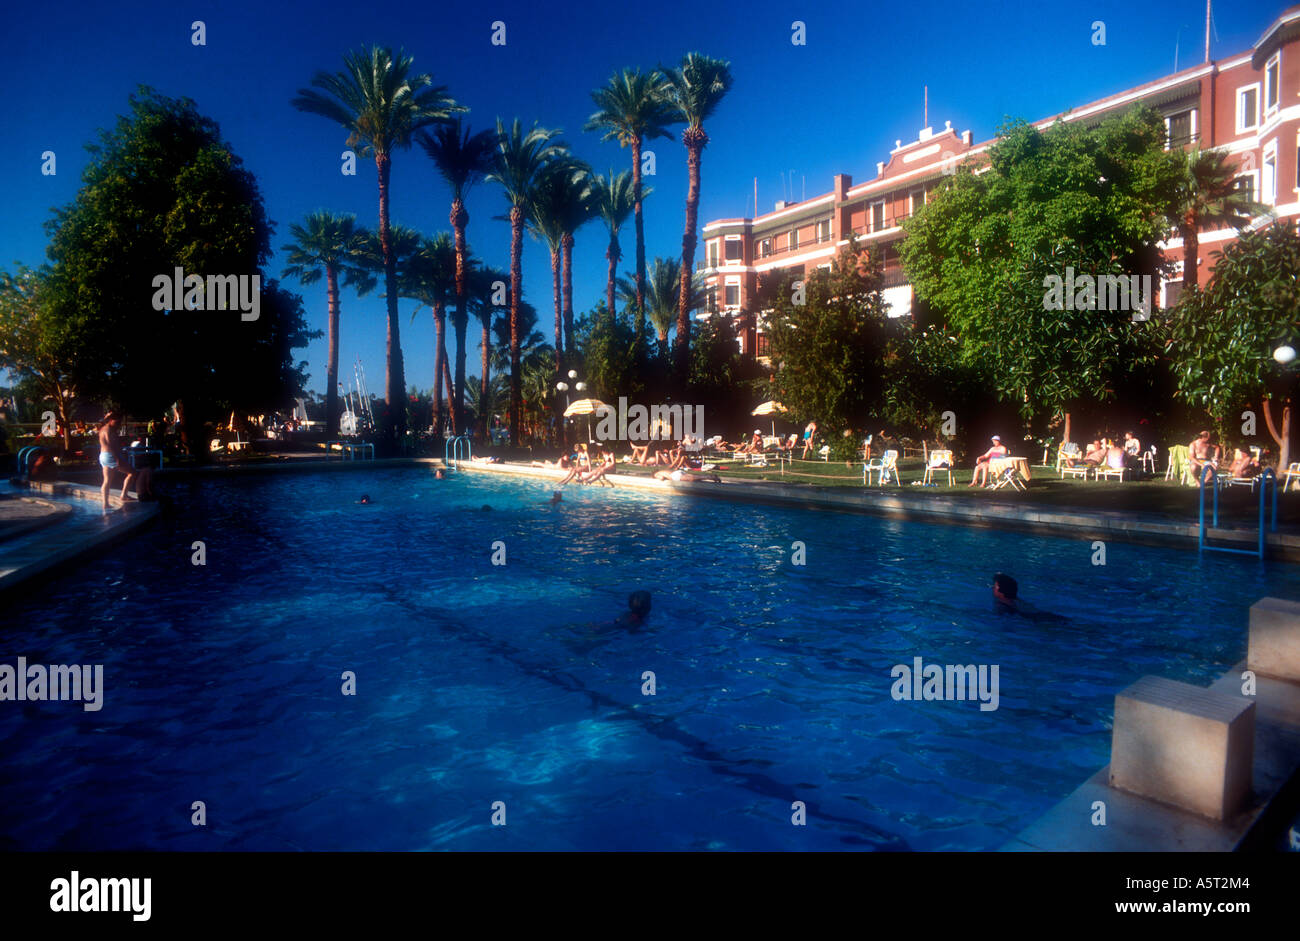 The Pool At The Old Cataract Hotel Aswan Egypt Stock Photo